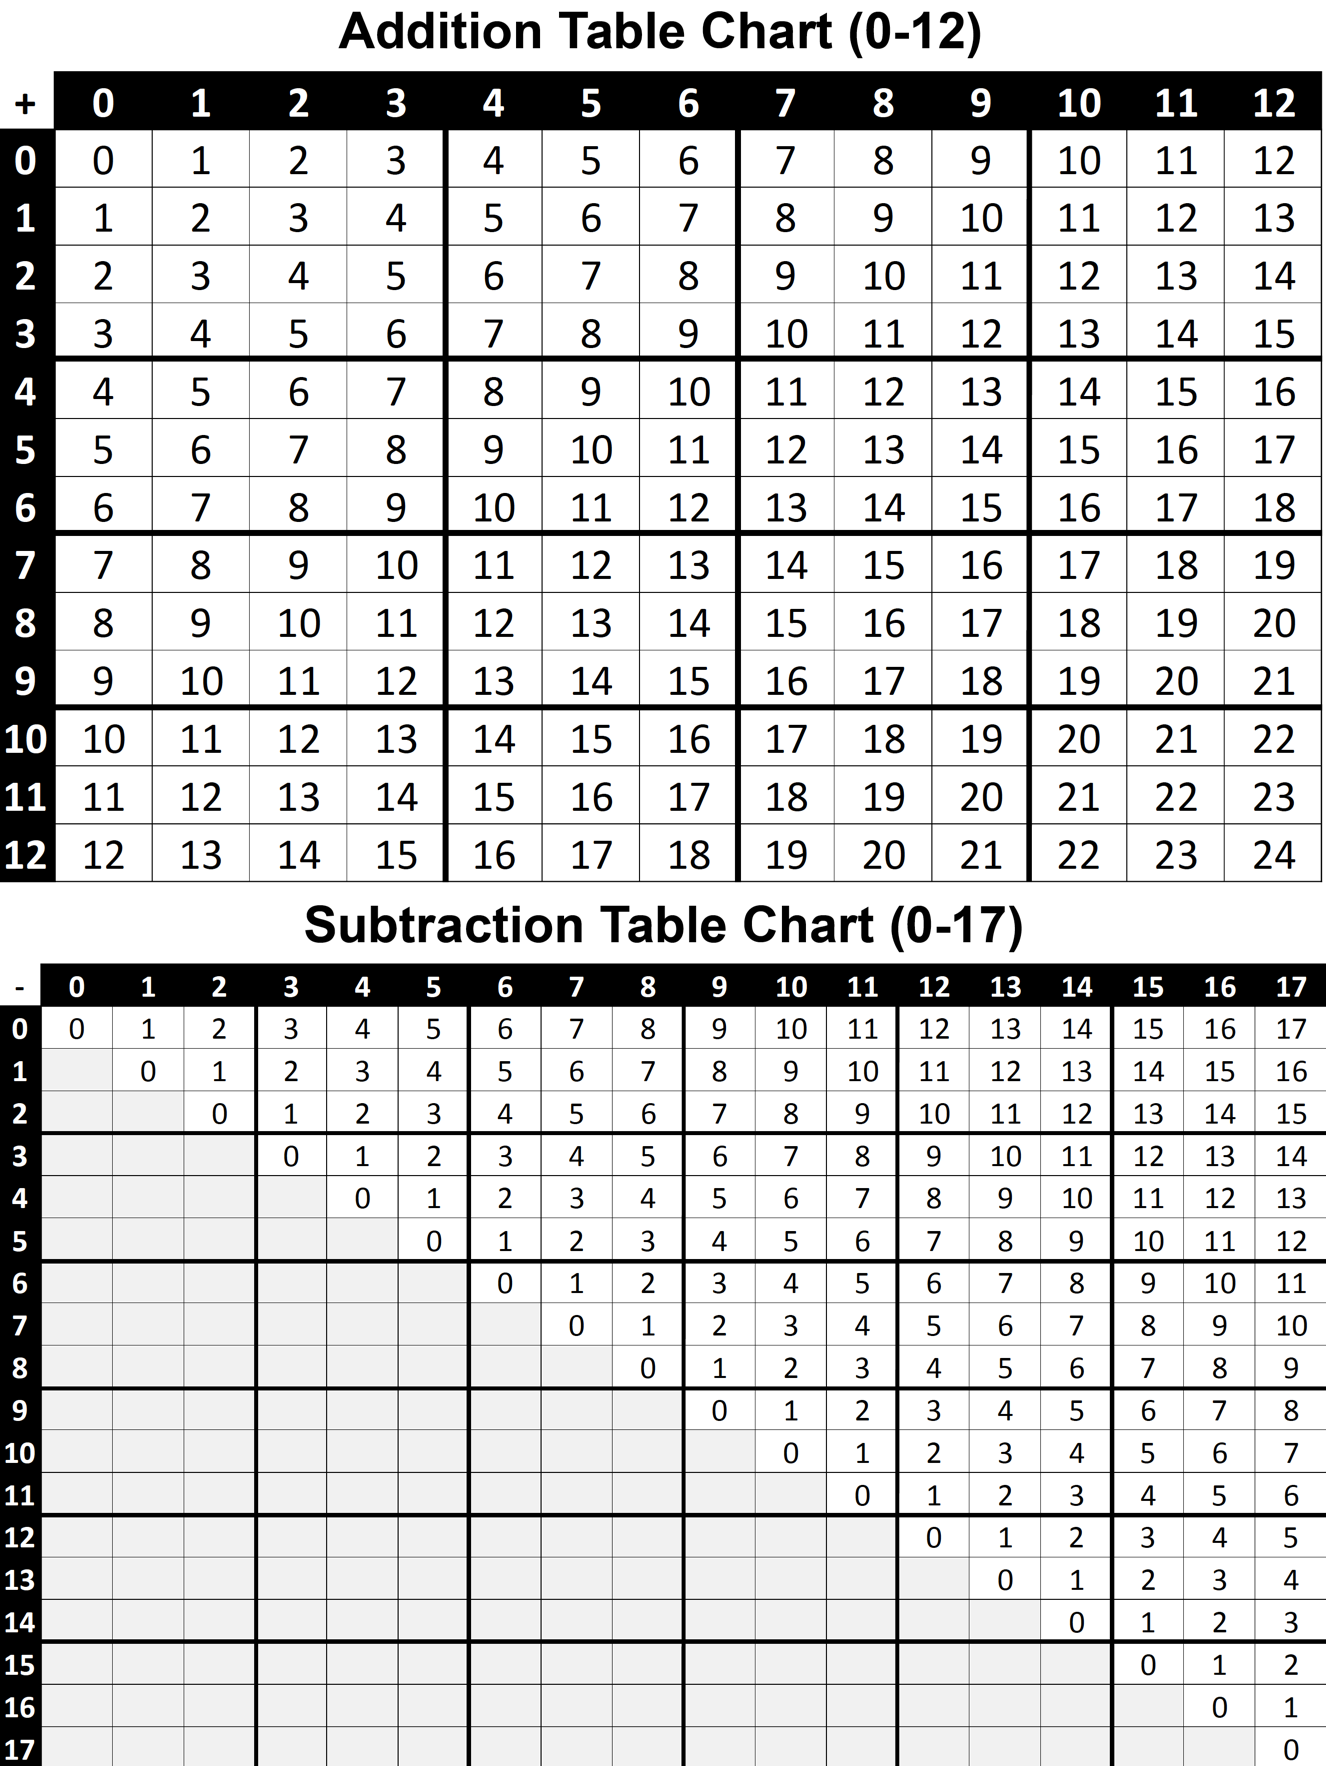 Addition and Subtraction Table Charts 0-12 Printable PDF (FREE)